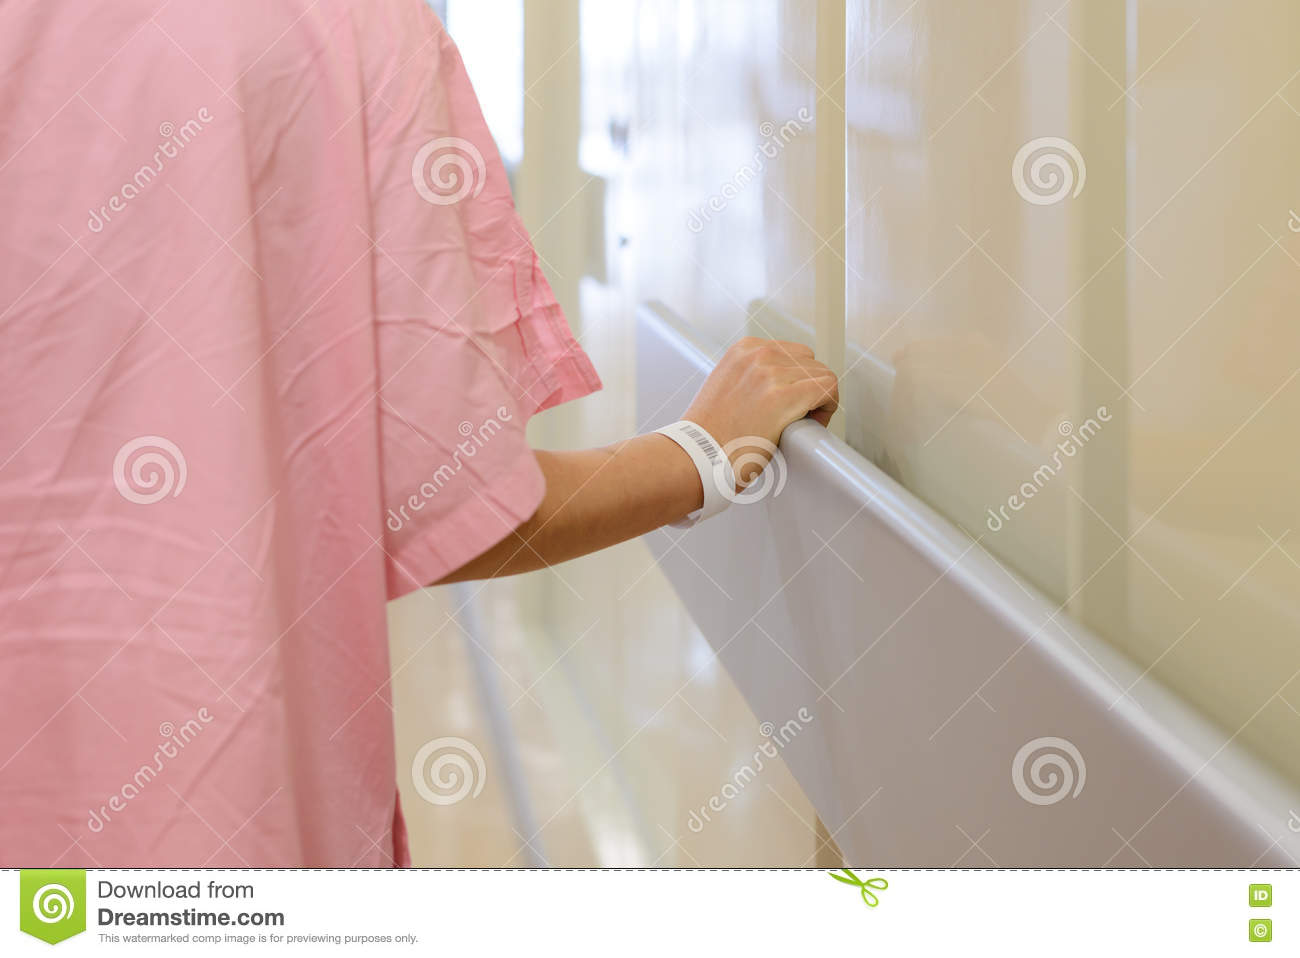 Women patient hand holding to handrail in hospital